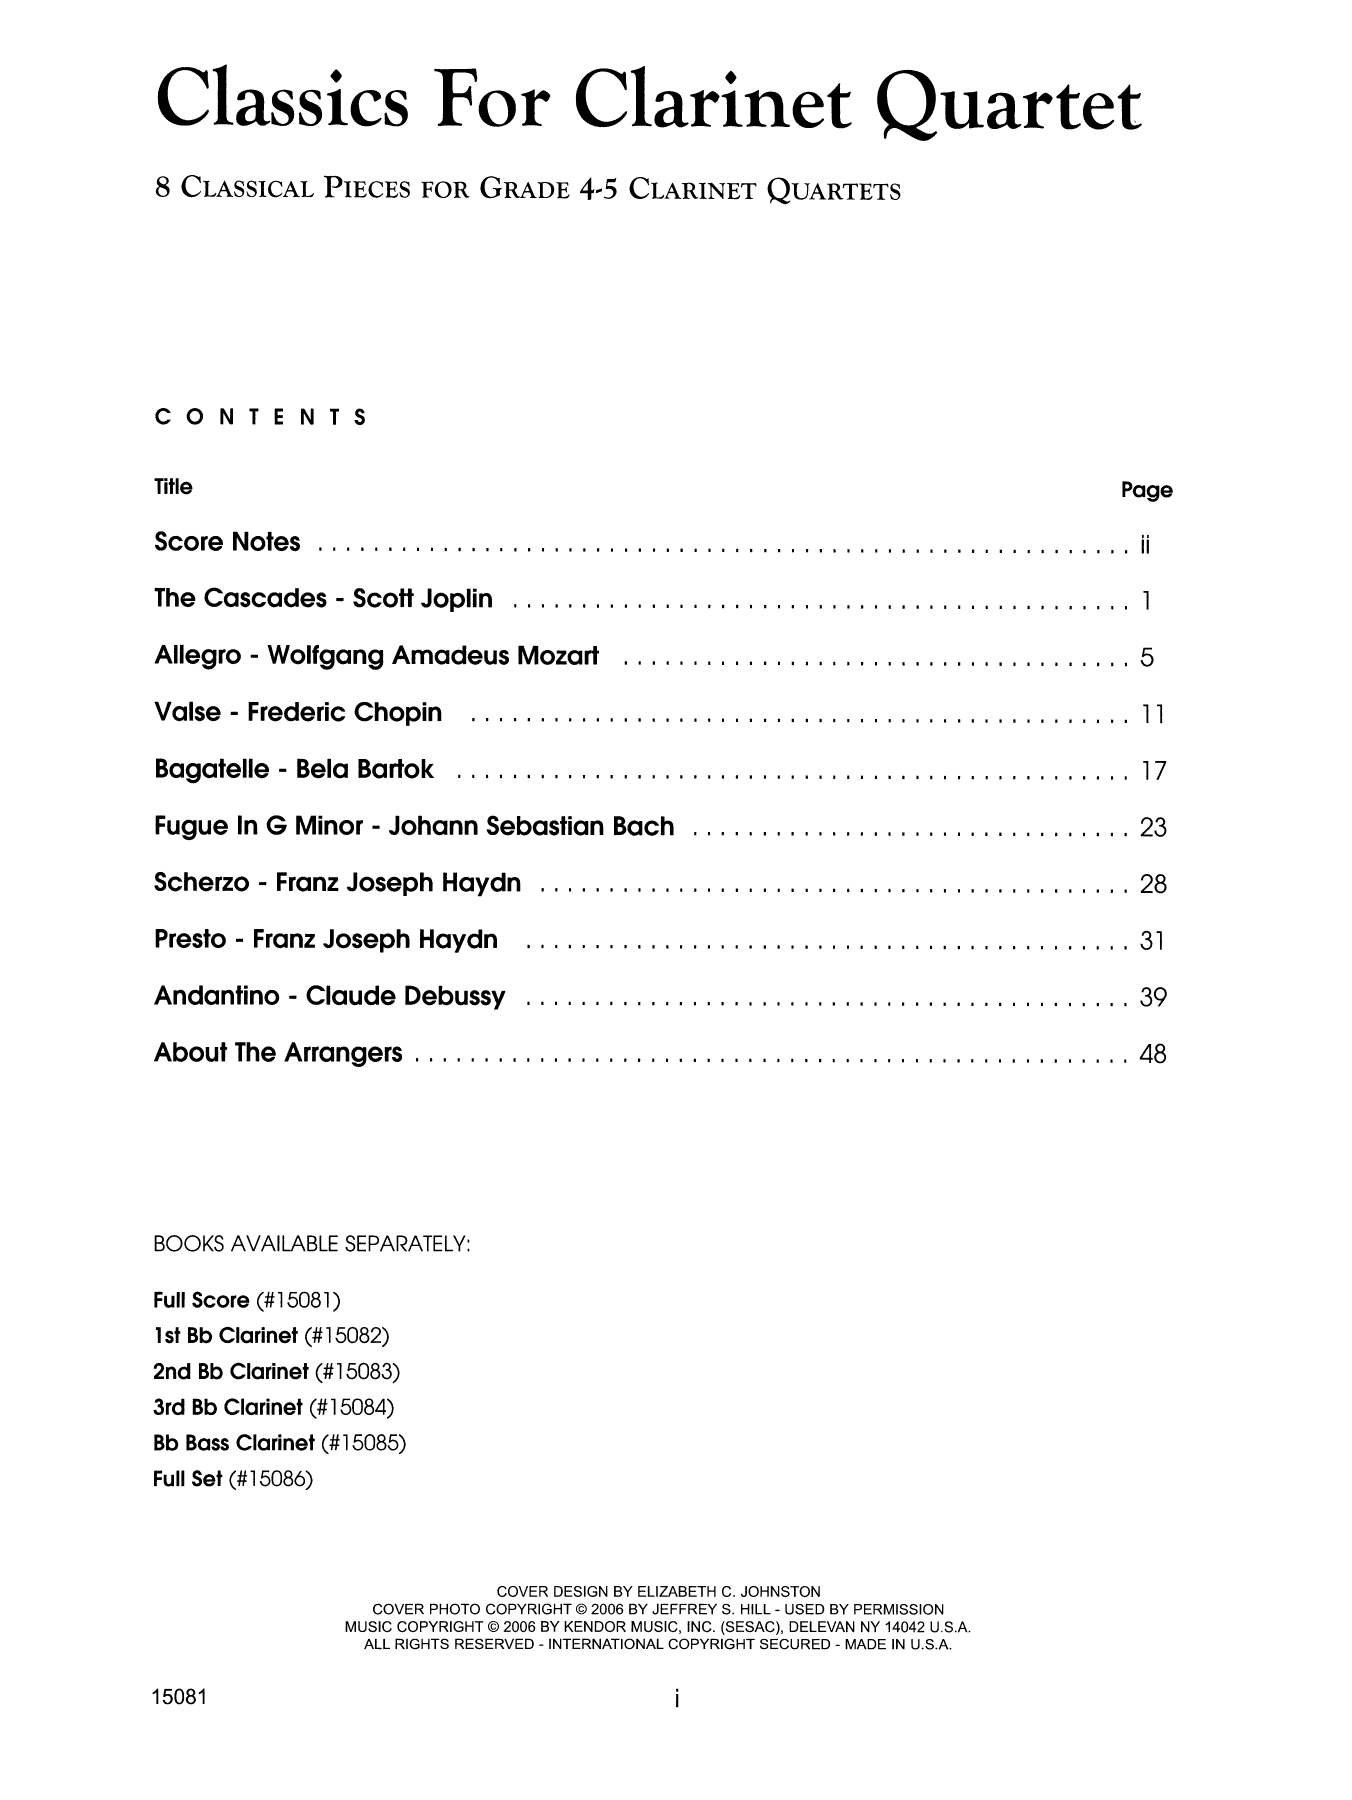 Classics For Clarinet Quartet - Full Score Digitale Noten